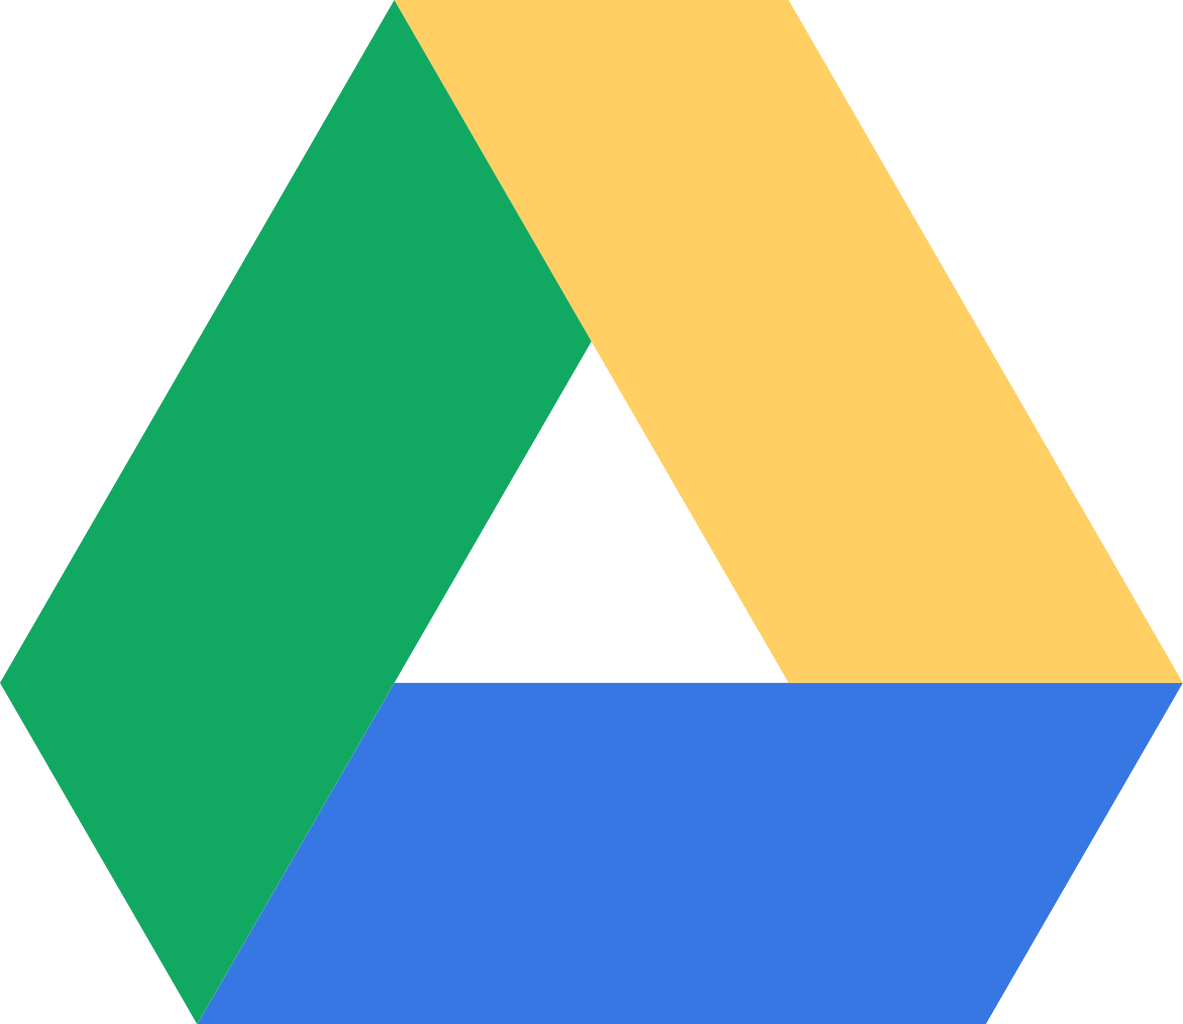 upload sales files from google drive, google drive for sales